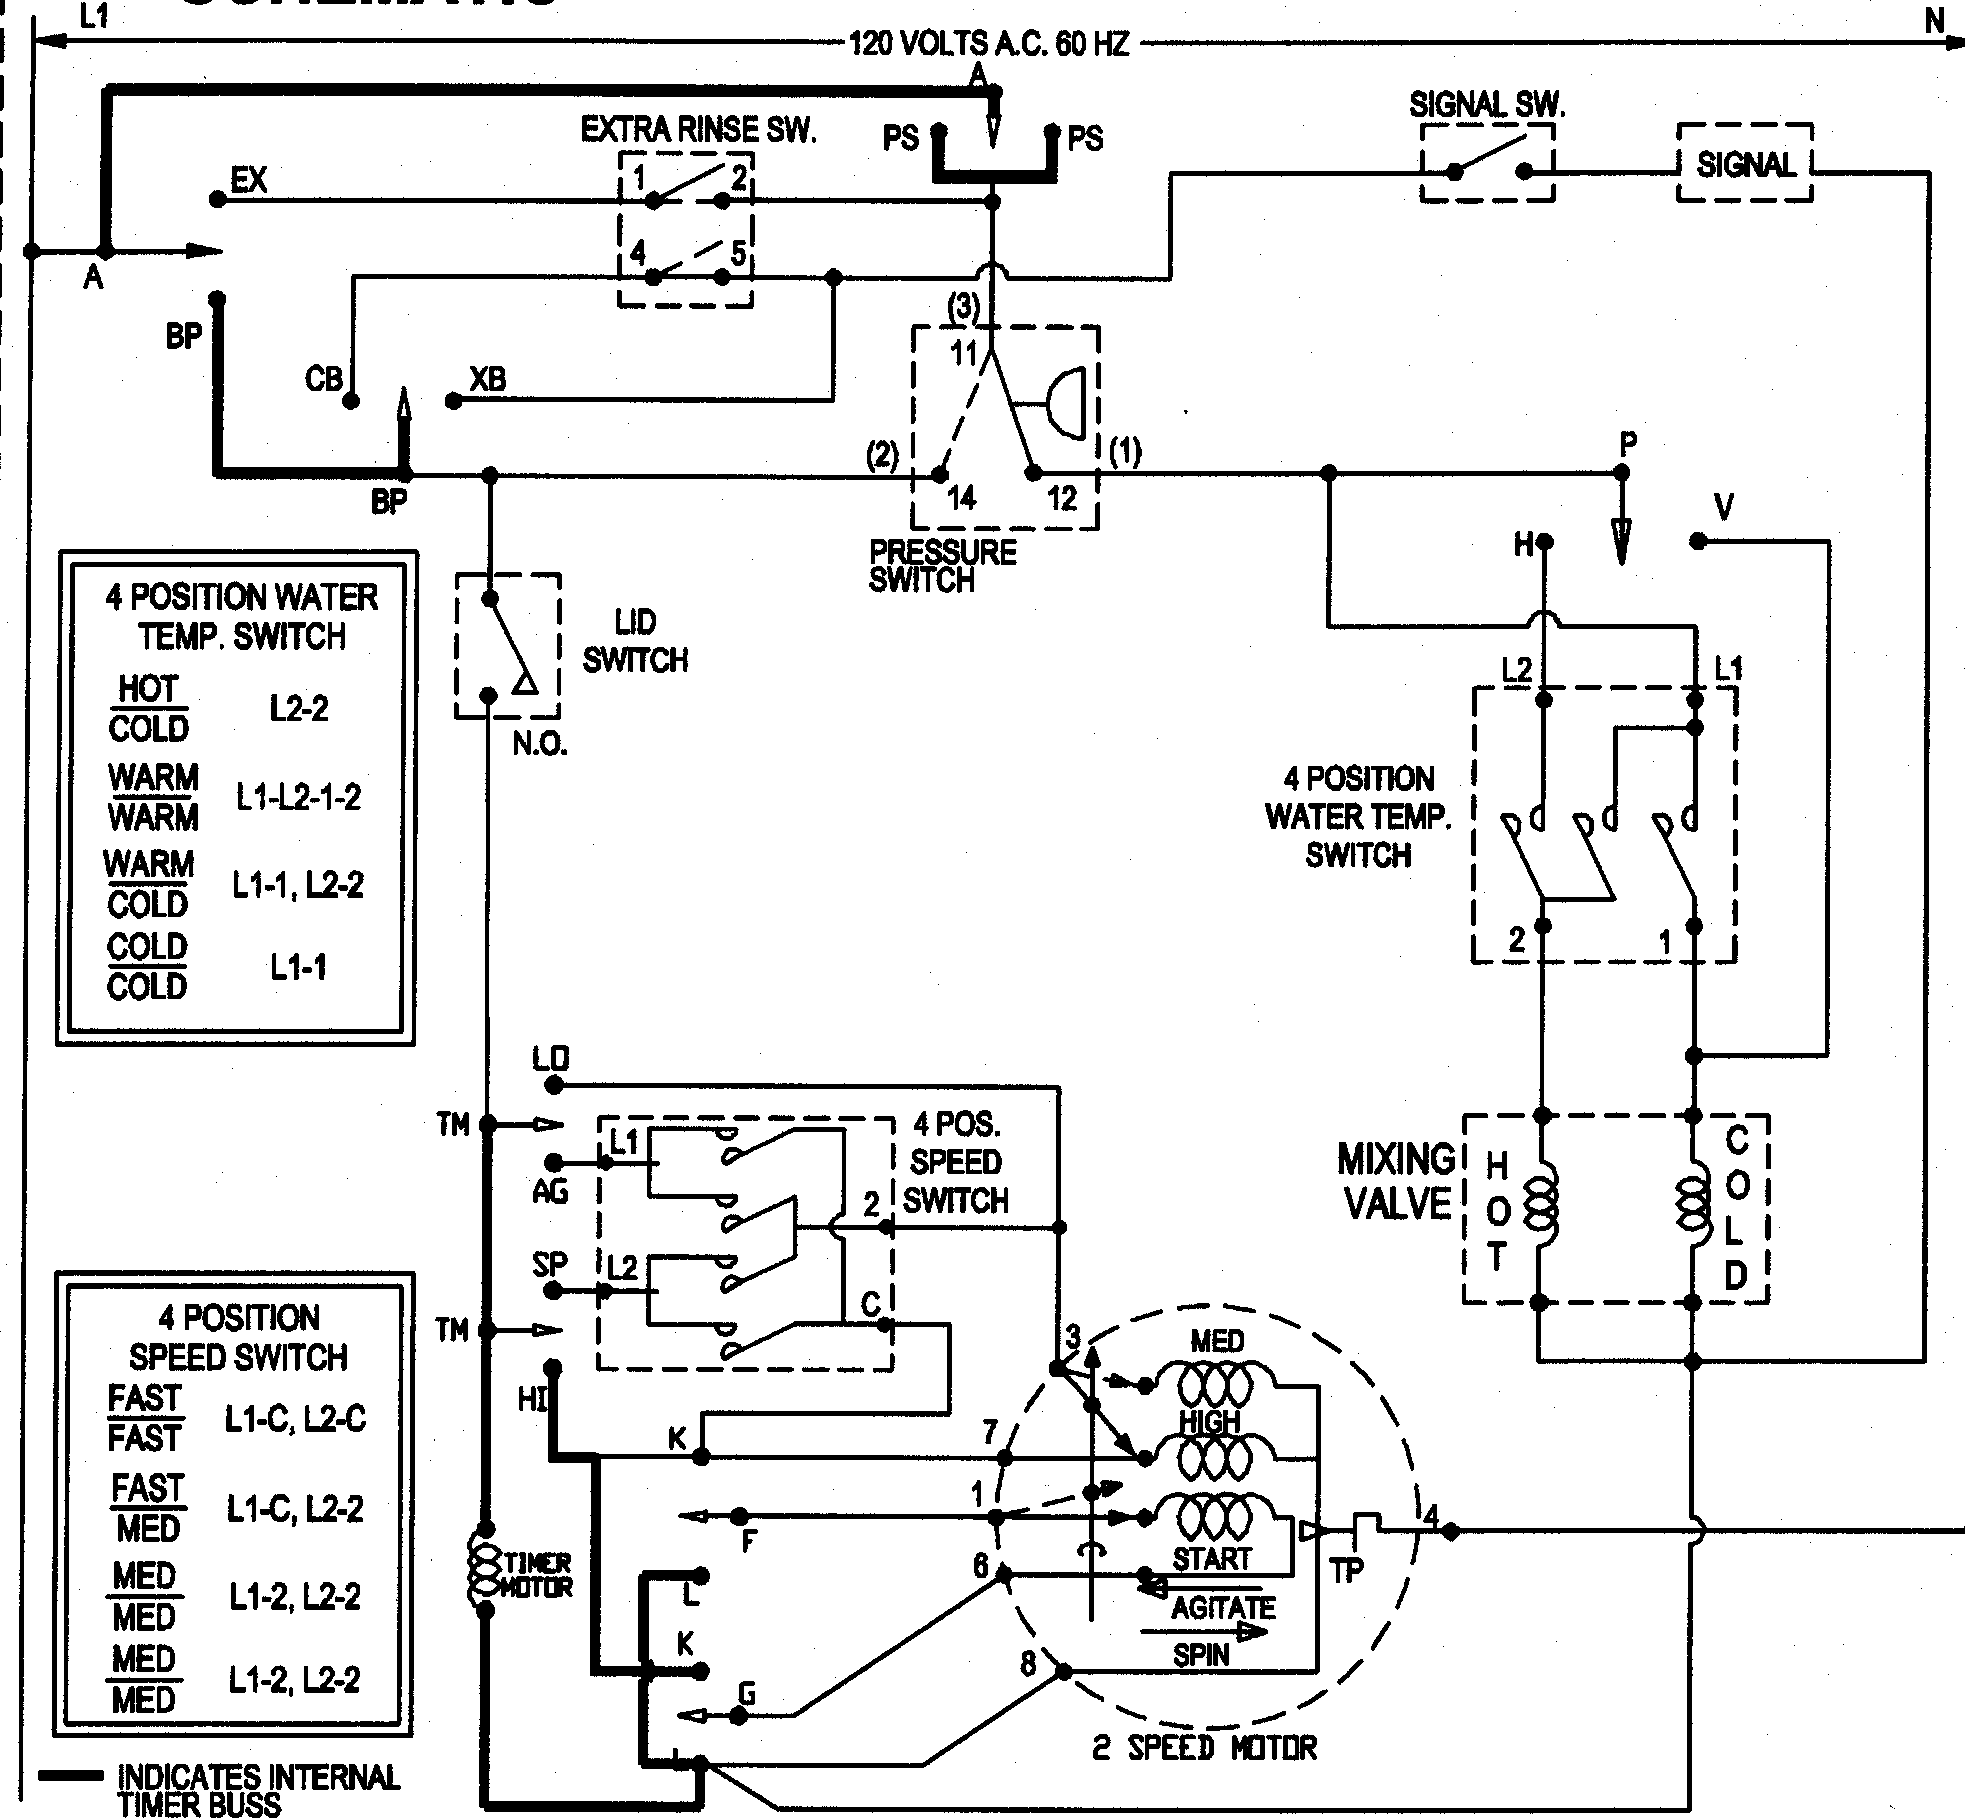 hight resolution of maytag performa washer parts diagram maytag atlantis washer parts diagram maytag washer diagram maytag washer wiring